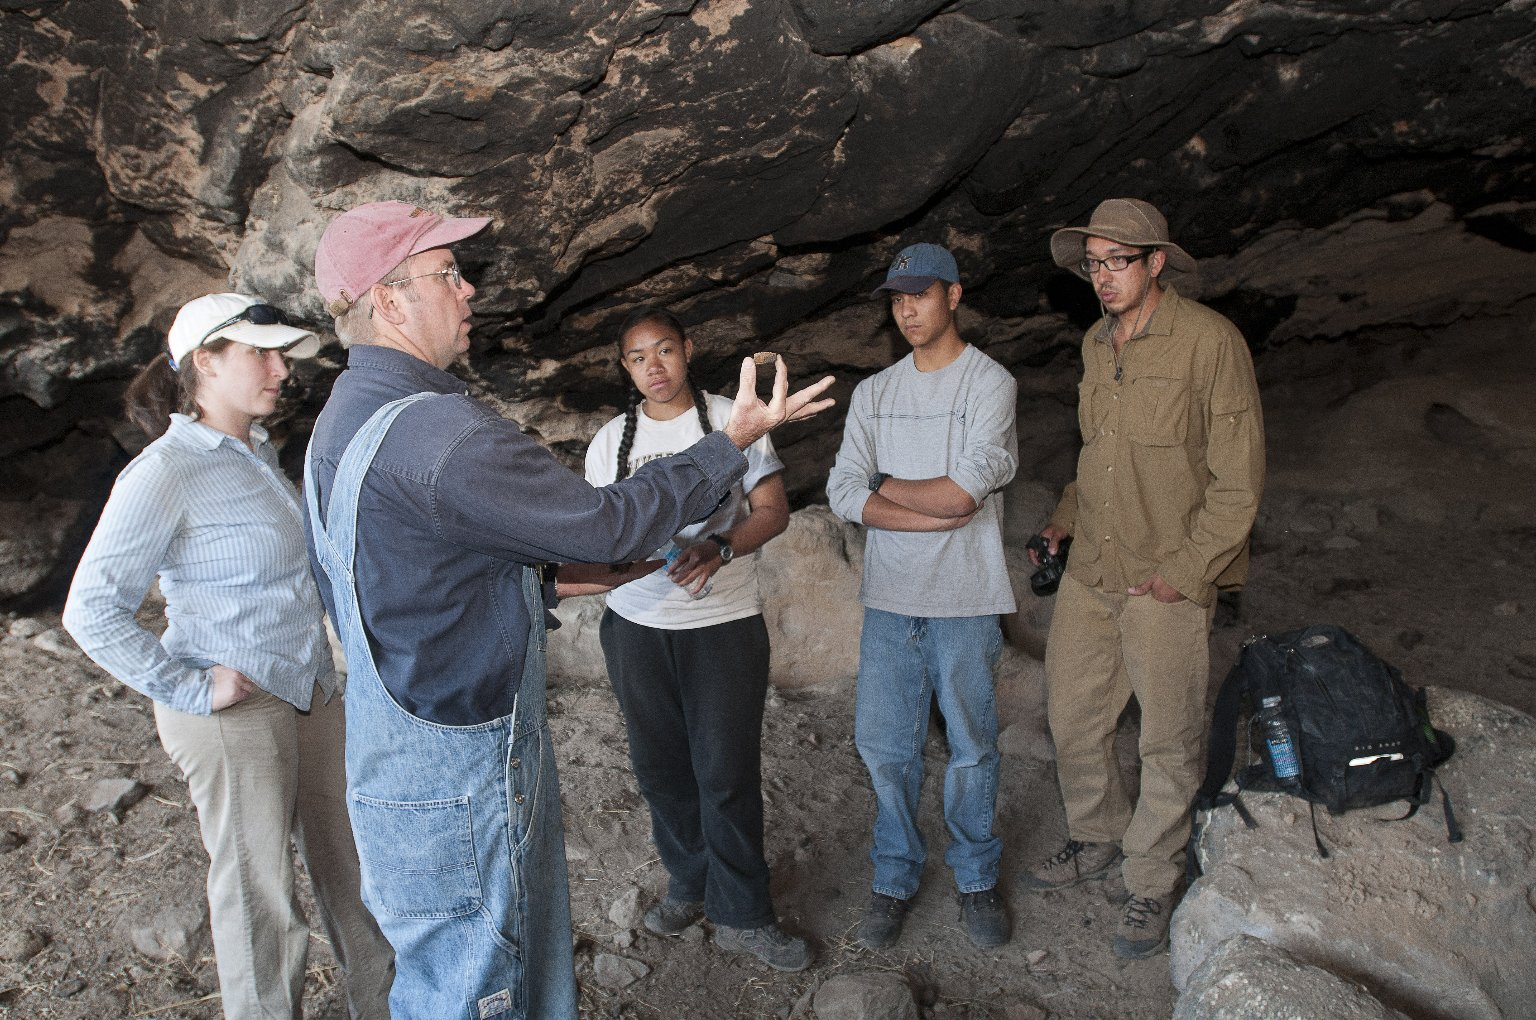 Dr. Steve Nash explains an object to the field team at the Hinkle Park Cliff Dwelling.